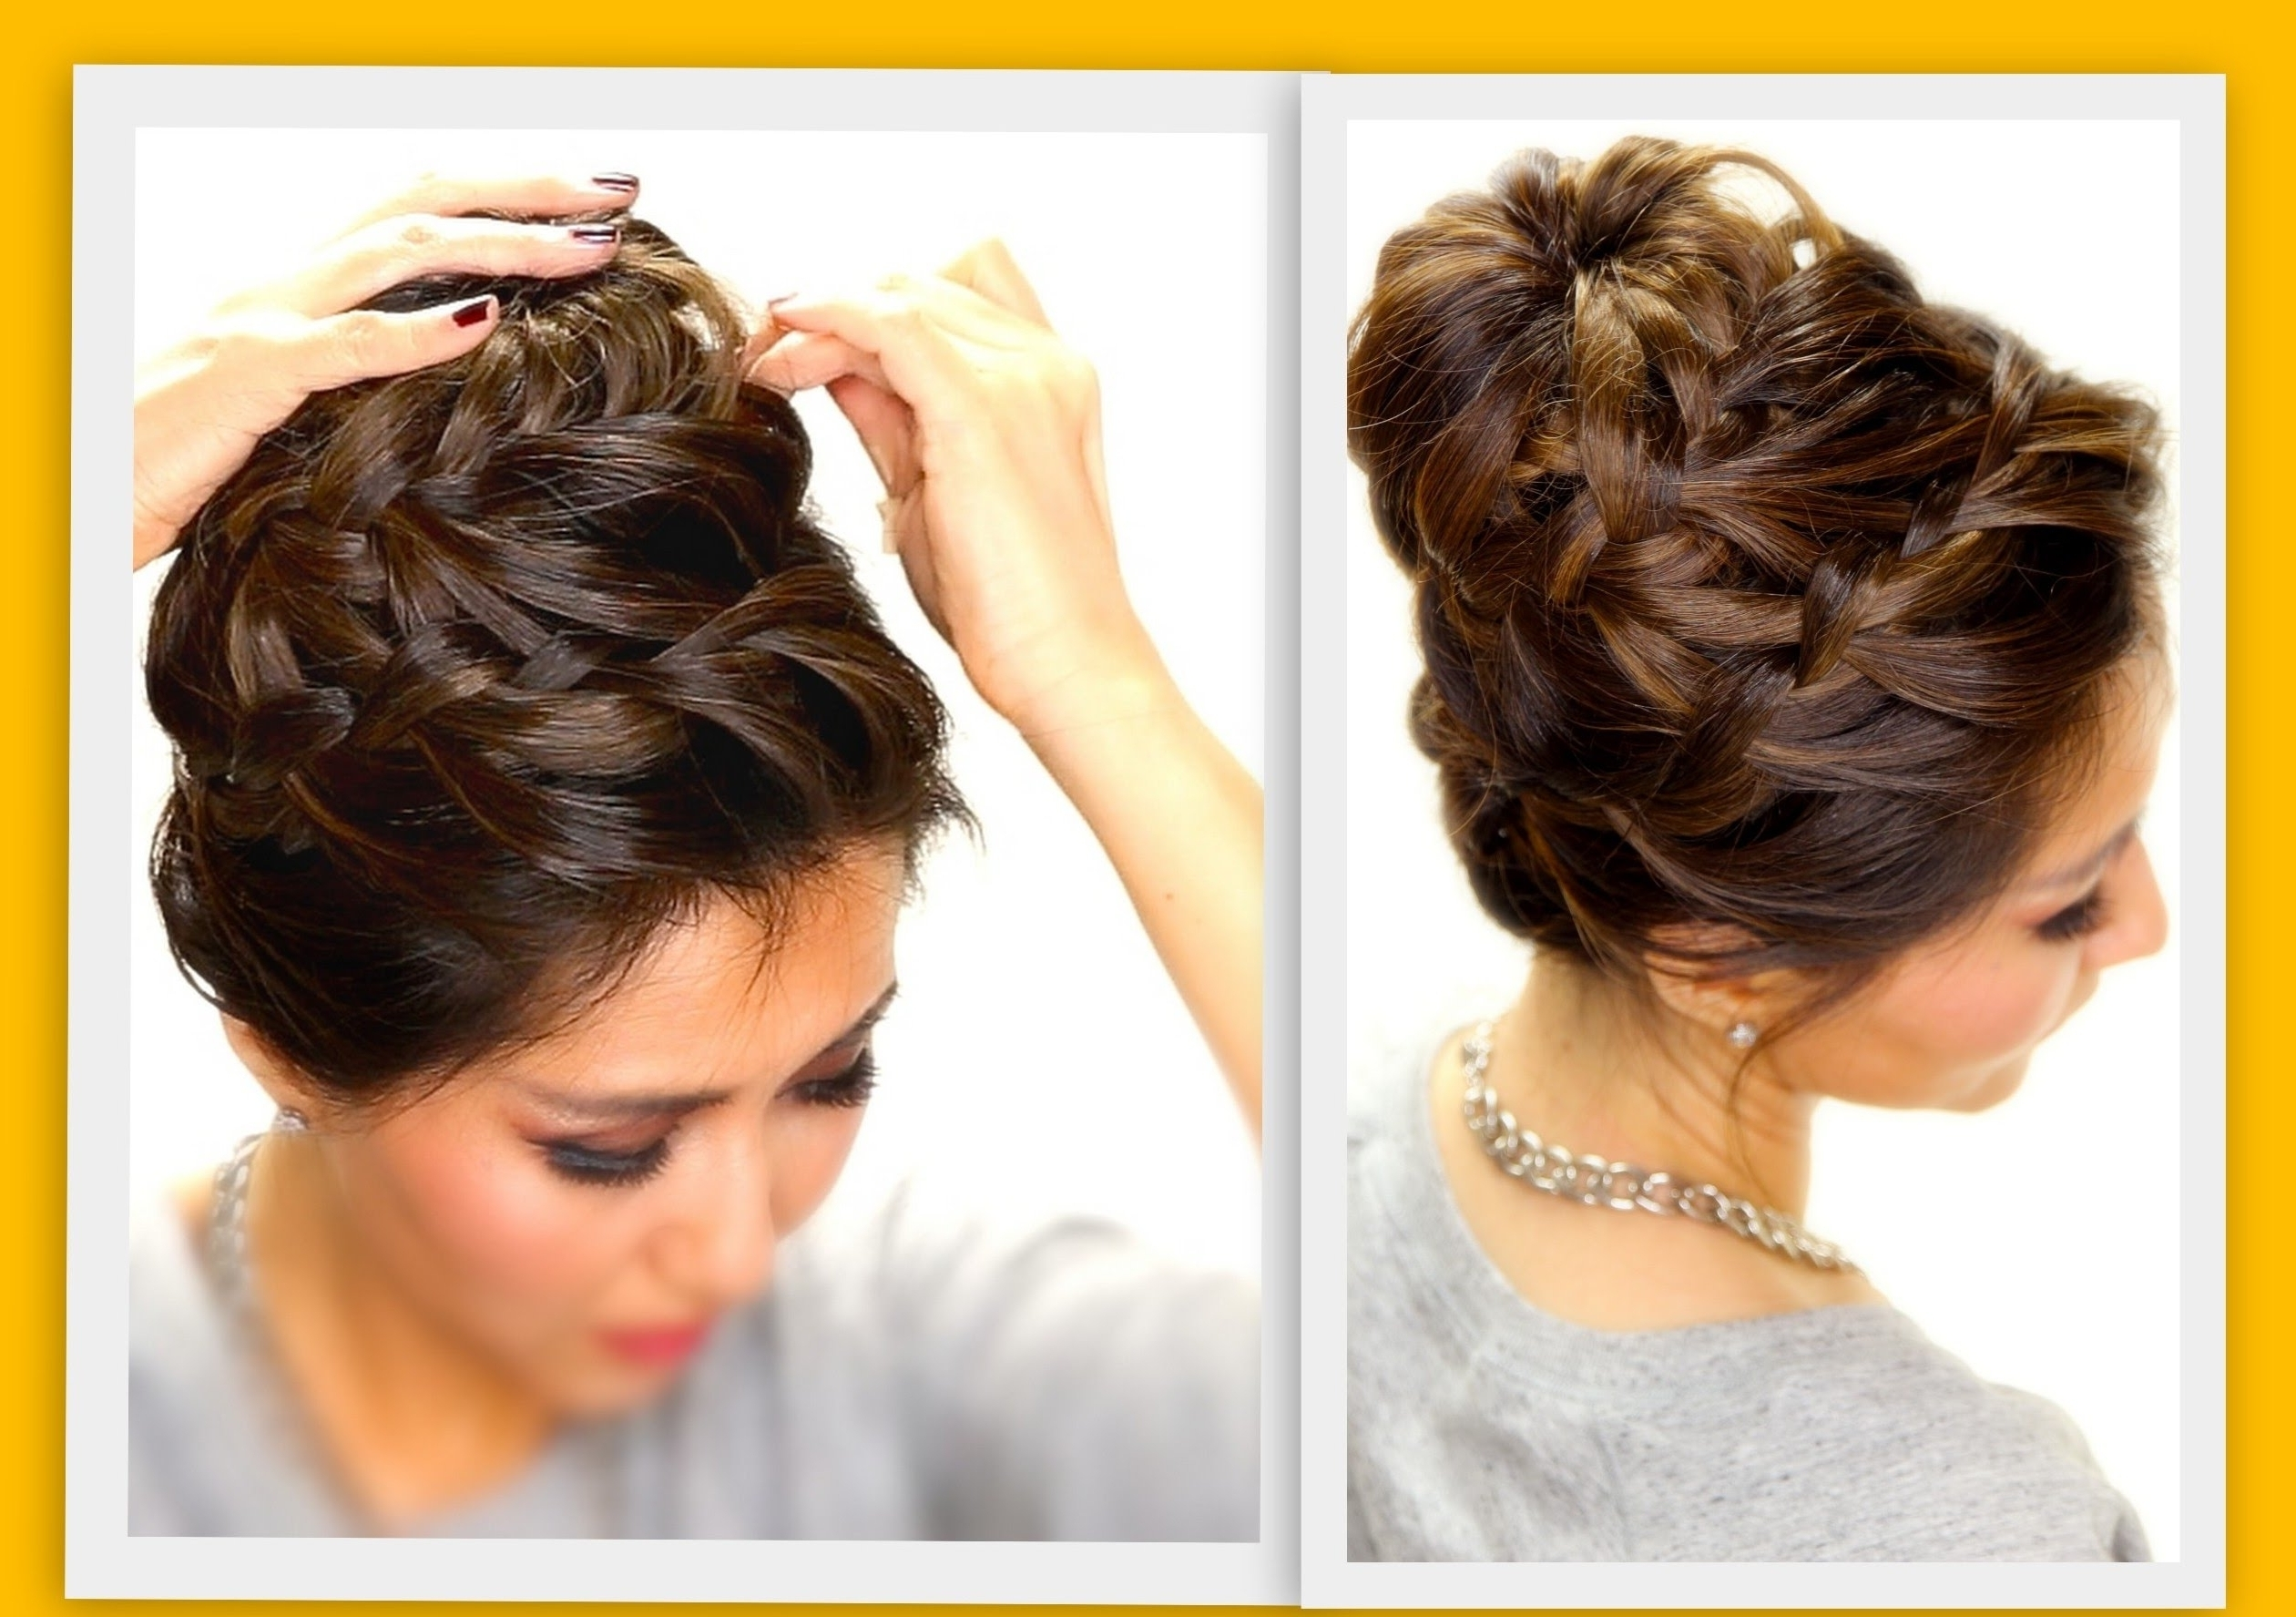 Updo Hairstyles For Layered Hair – Women Medium Haircut Within Updo Hairstyles For Long Hair With Bangs And Layers (Gallery 5 of 15)